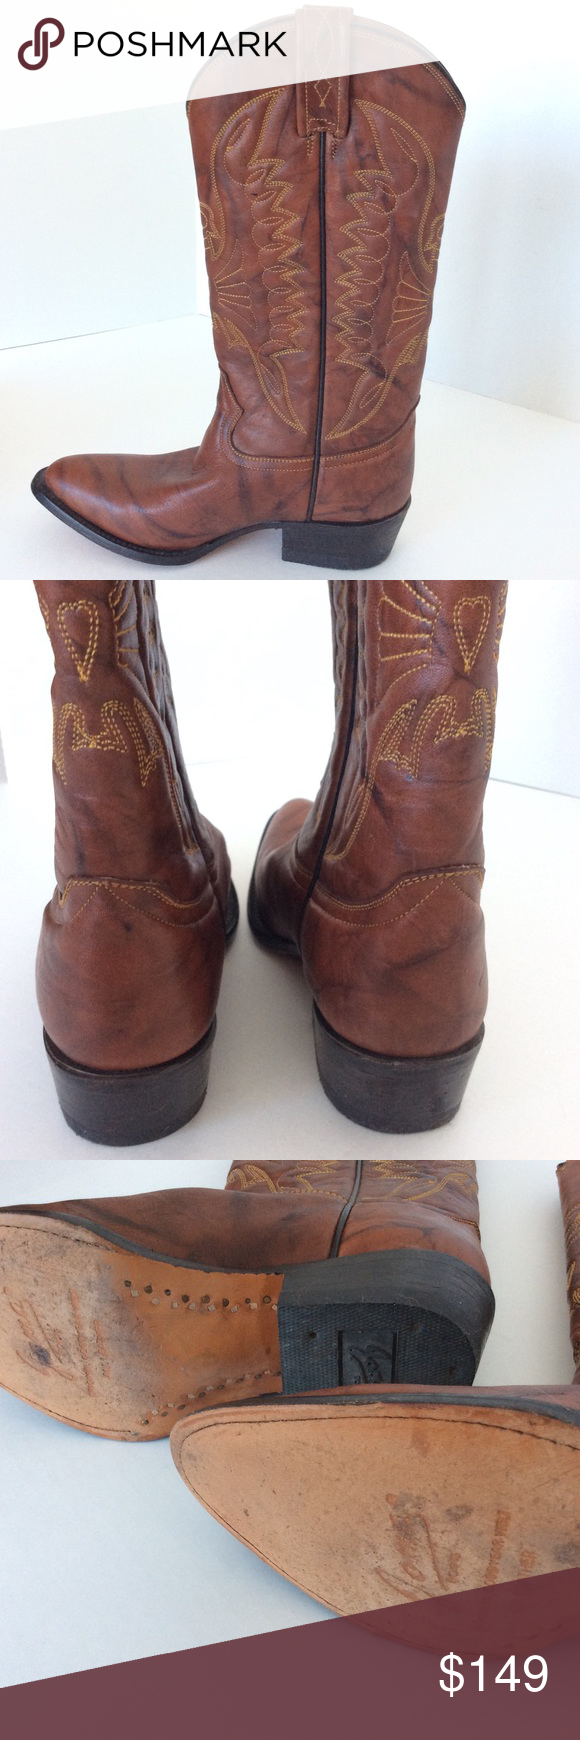 """JOMA🔹HANDCRAFTED COWBOY BOOTS👢AUTHENTIC JOMA western boots. Excellent used condition. Handcrafted in Mexico. Sole reads """"all leather"""", & inside reads: """"23 1/2 E, E, 1121, H12.""""  I am assuming the 23 1/2 is cm. I was not sure of the Mexican sizing. I determined they are 23.5 cm, which would be a women's size 6.5, or a youth boy's size 5.5, equivalent to a Euro 36.5 - 37. From the floor, are 14"""" tall. The measurement around the calf, at the boot's widest, is 12.5"""". The sole is 10 1/8"""" from…"""